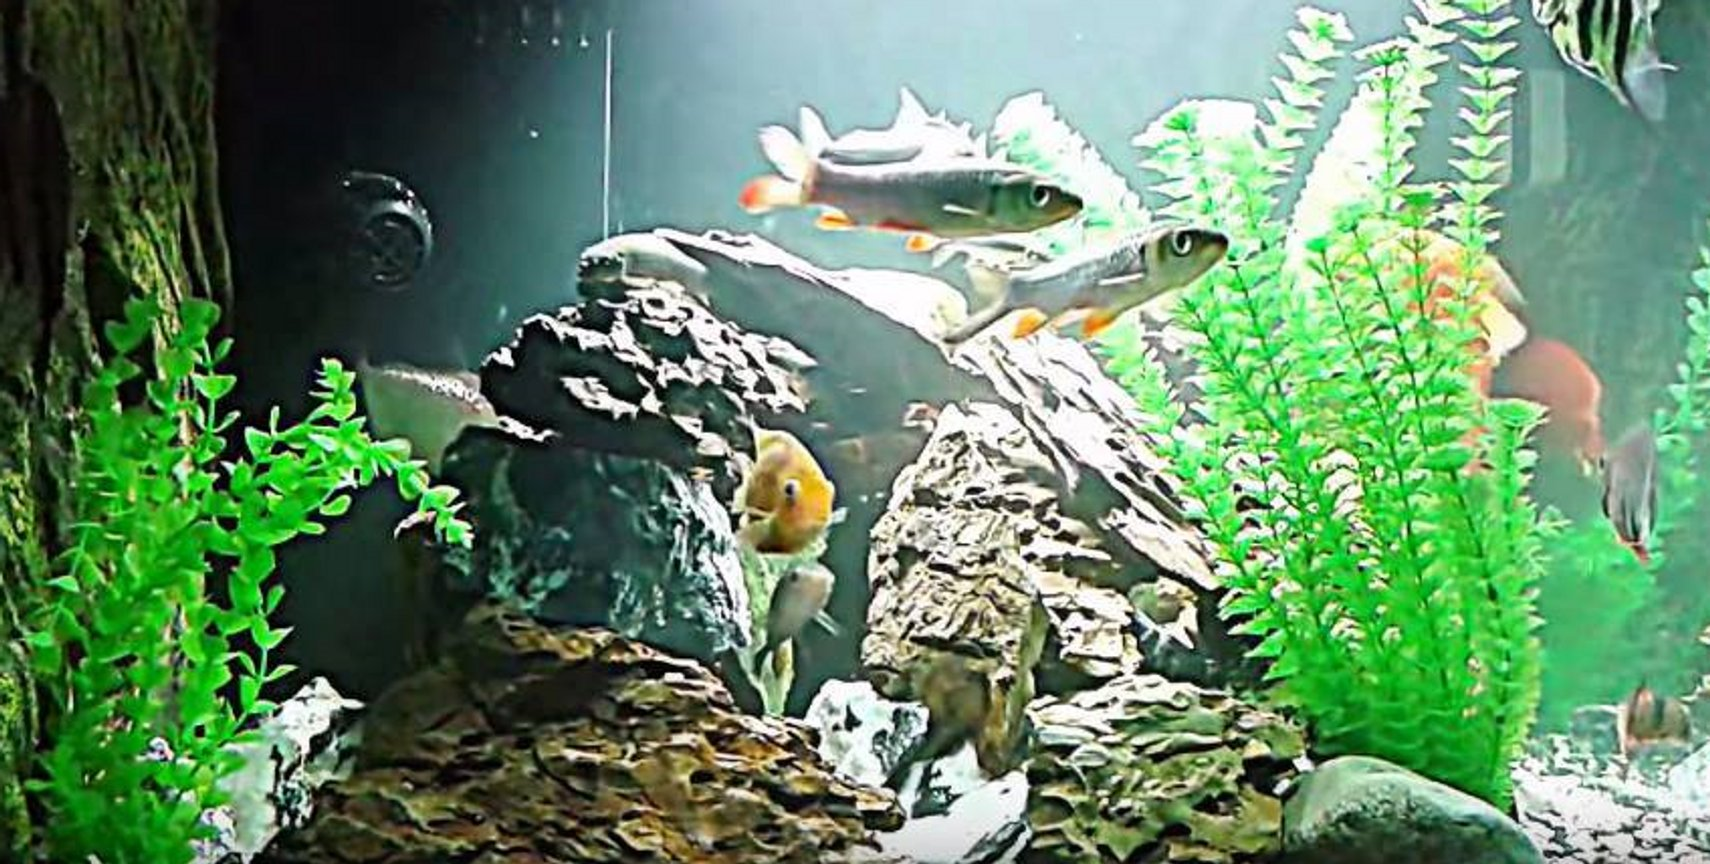 120 gallons freshwater fish tank (mostly fish and non-living decorations) - Large fish in a lake scenery